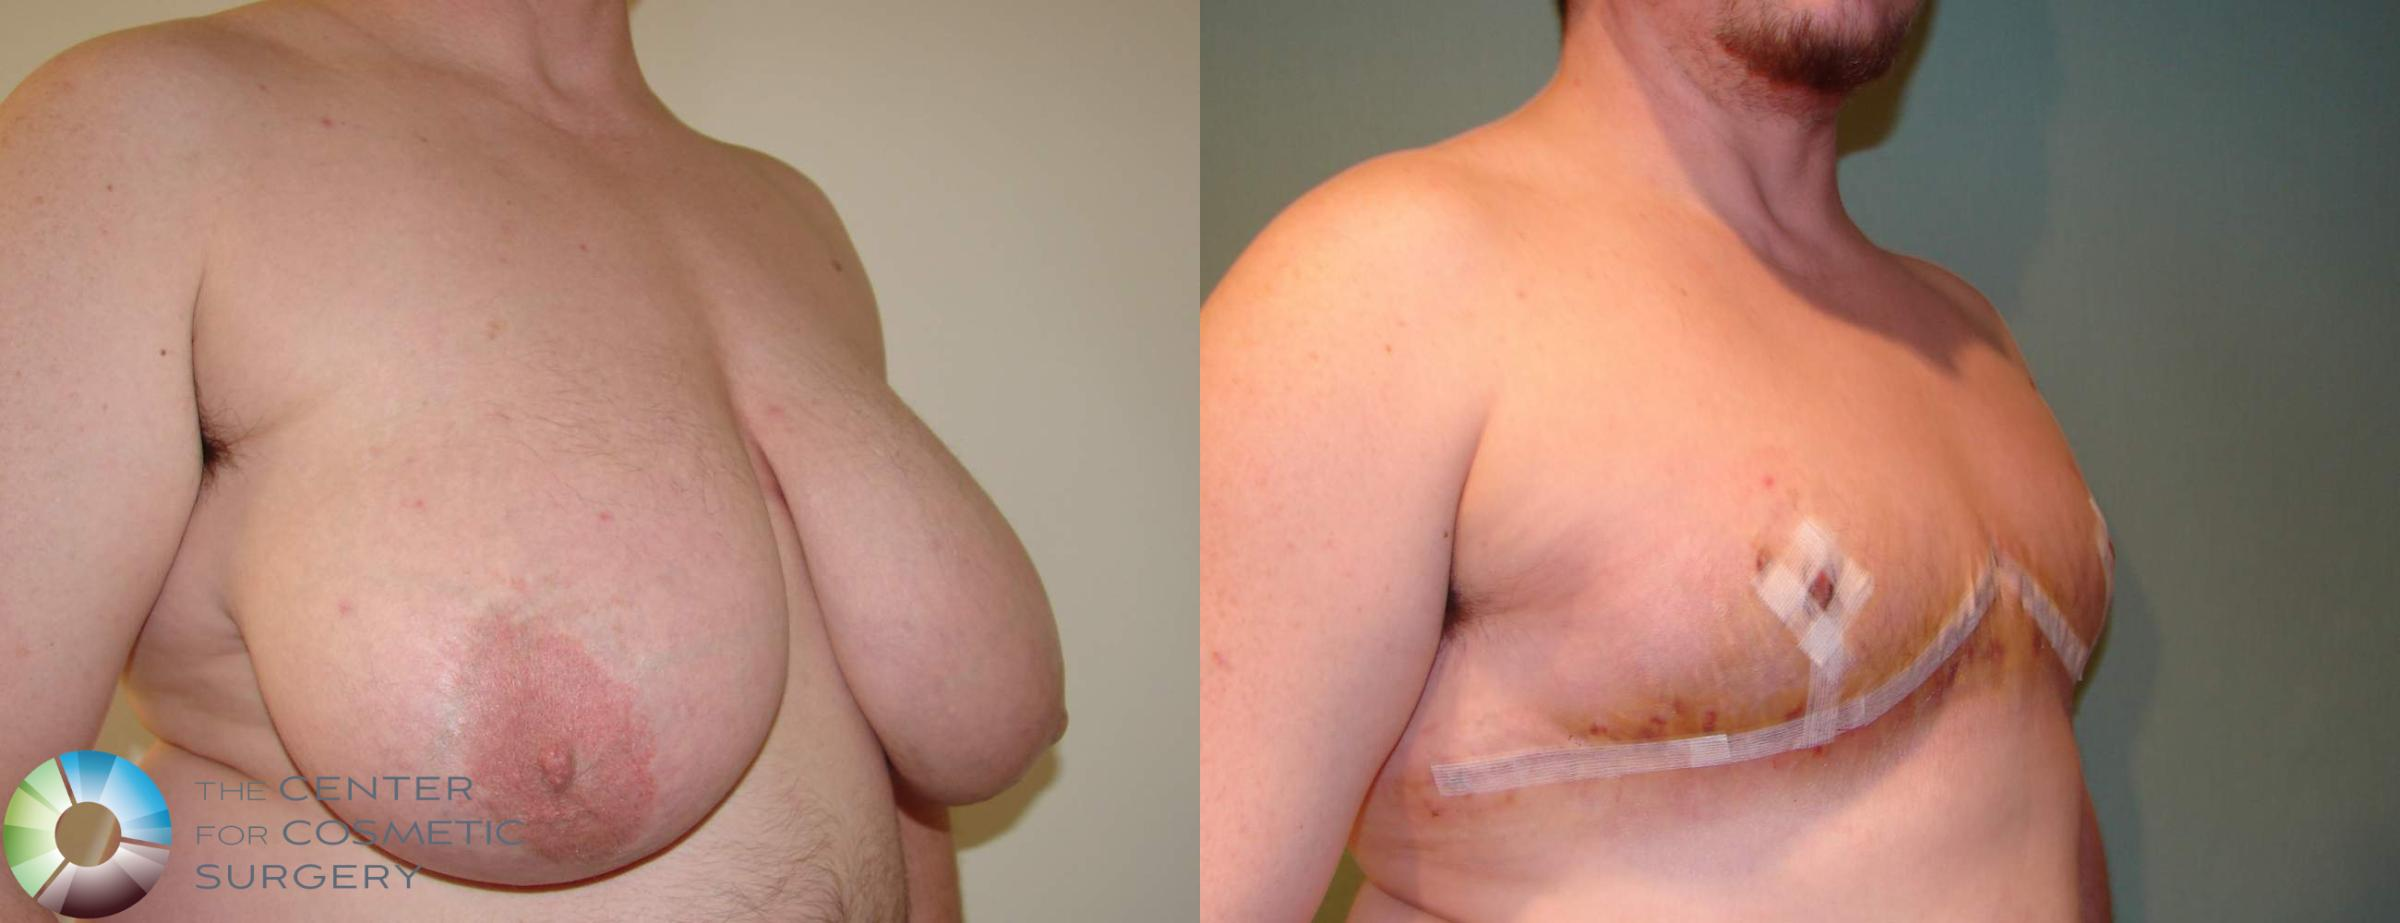 FTM Top Surgery/Chest Masculinization Case 611 Before & After View #2 | Golden, CO | The Center for Cosmetic Surgery